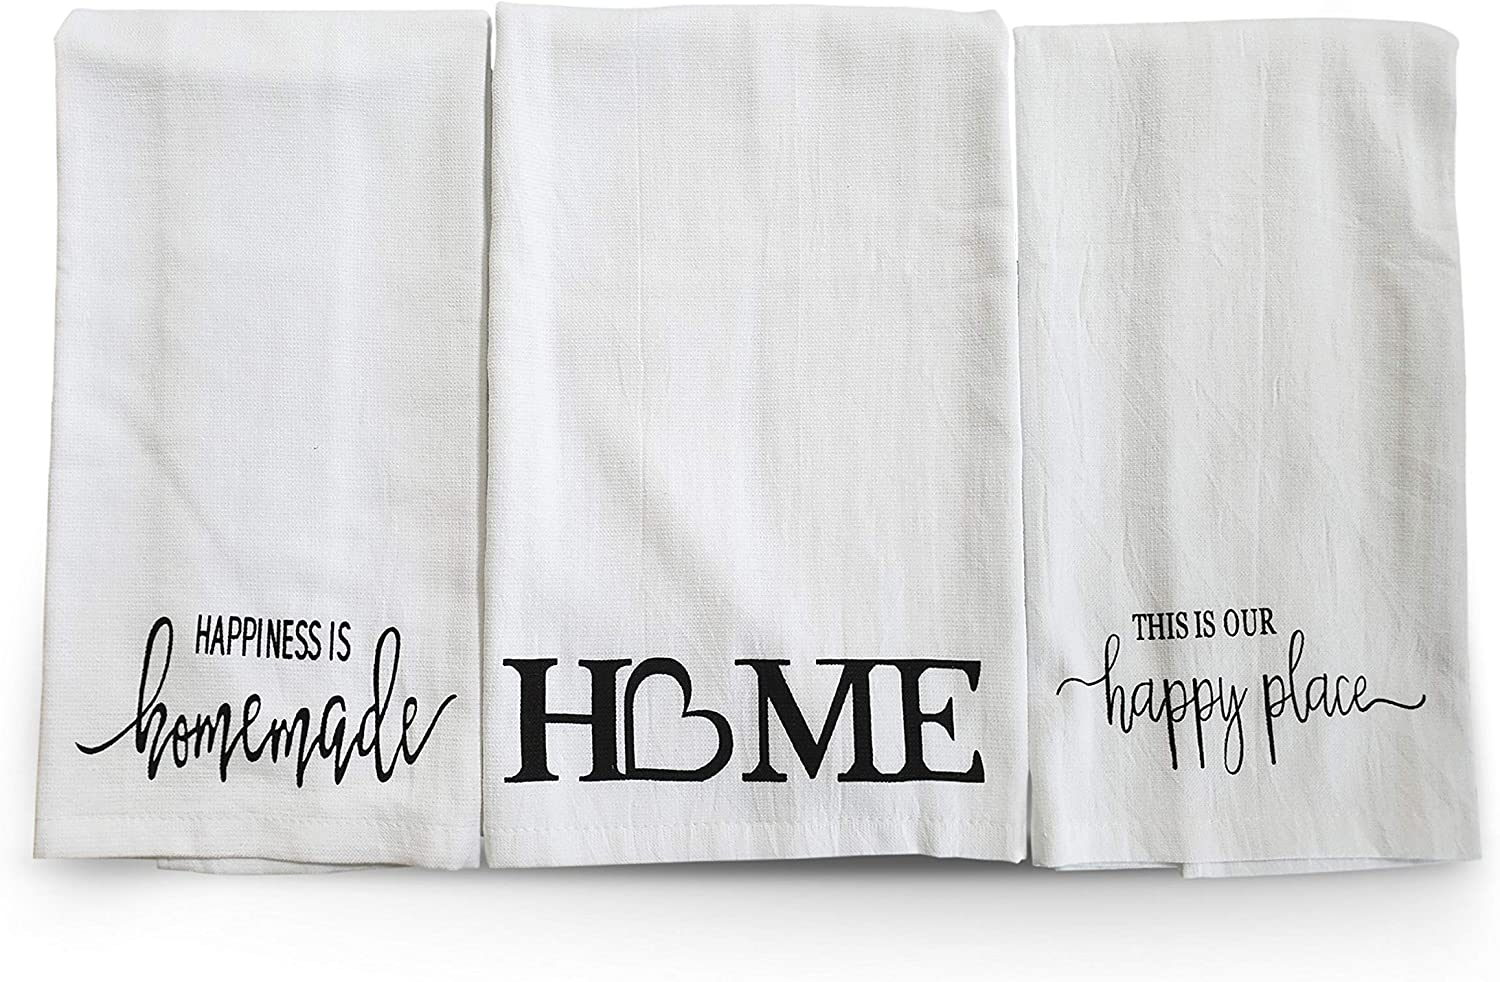 L LIFETIME Cotton Kitchen Hand Towels Set, Soft Highly Absorbent 100% Terry Cloth Tea Towel Simple Funny Design Decorative Durable Large White Bathroom Powder Room Gift 28 X 12 Inches Set of 3 (Home)